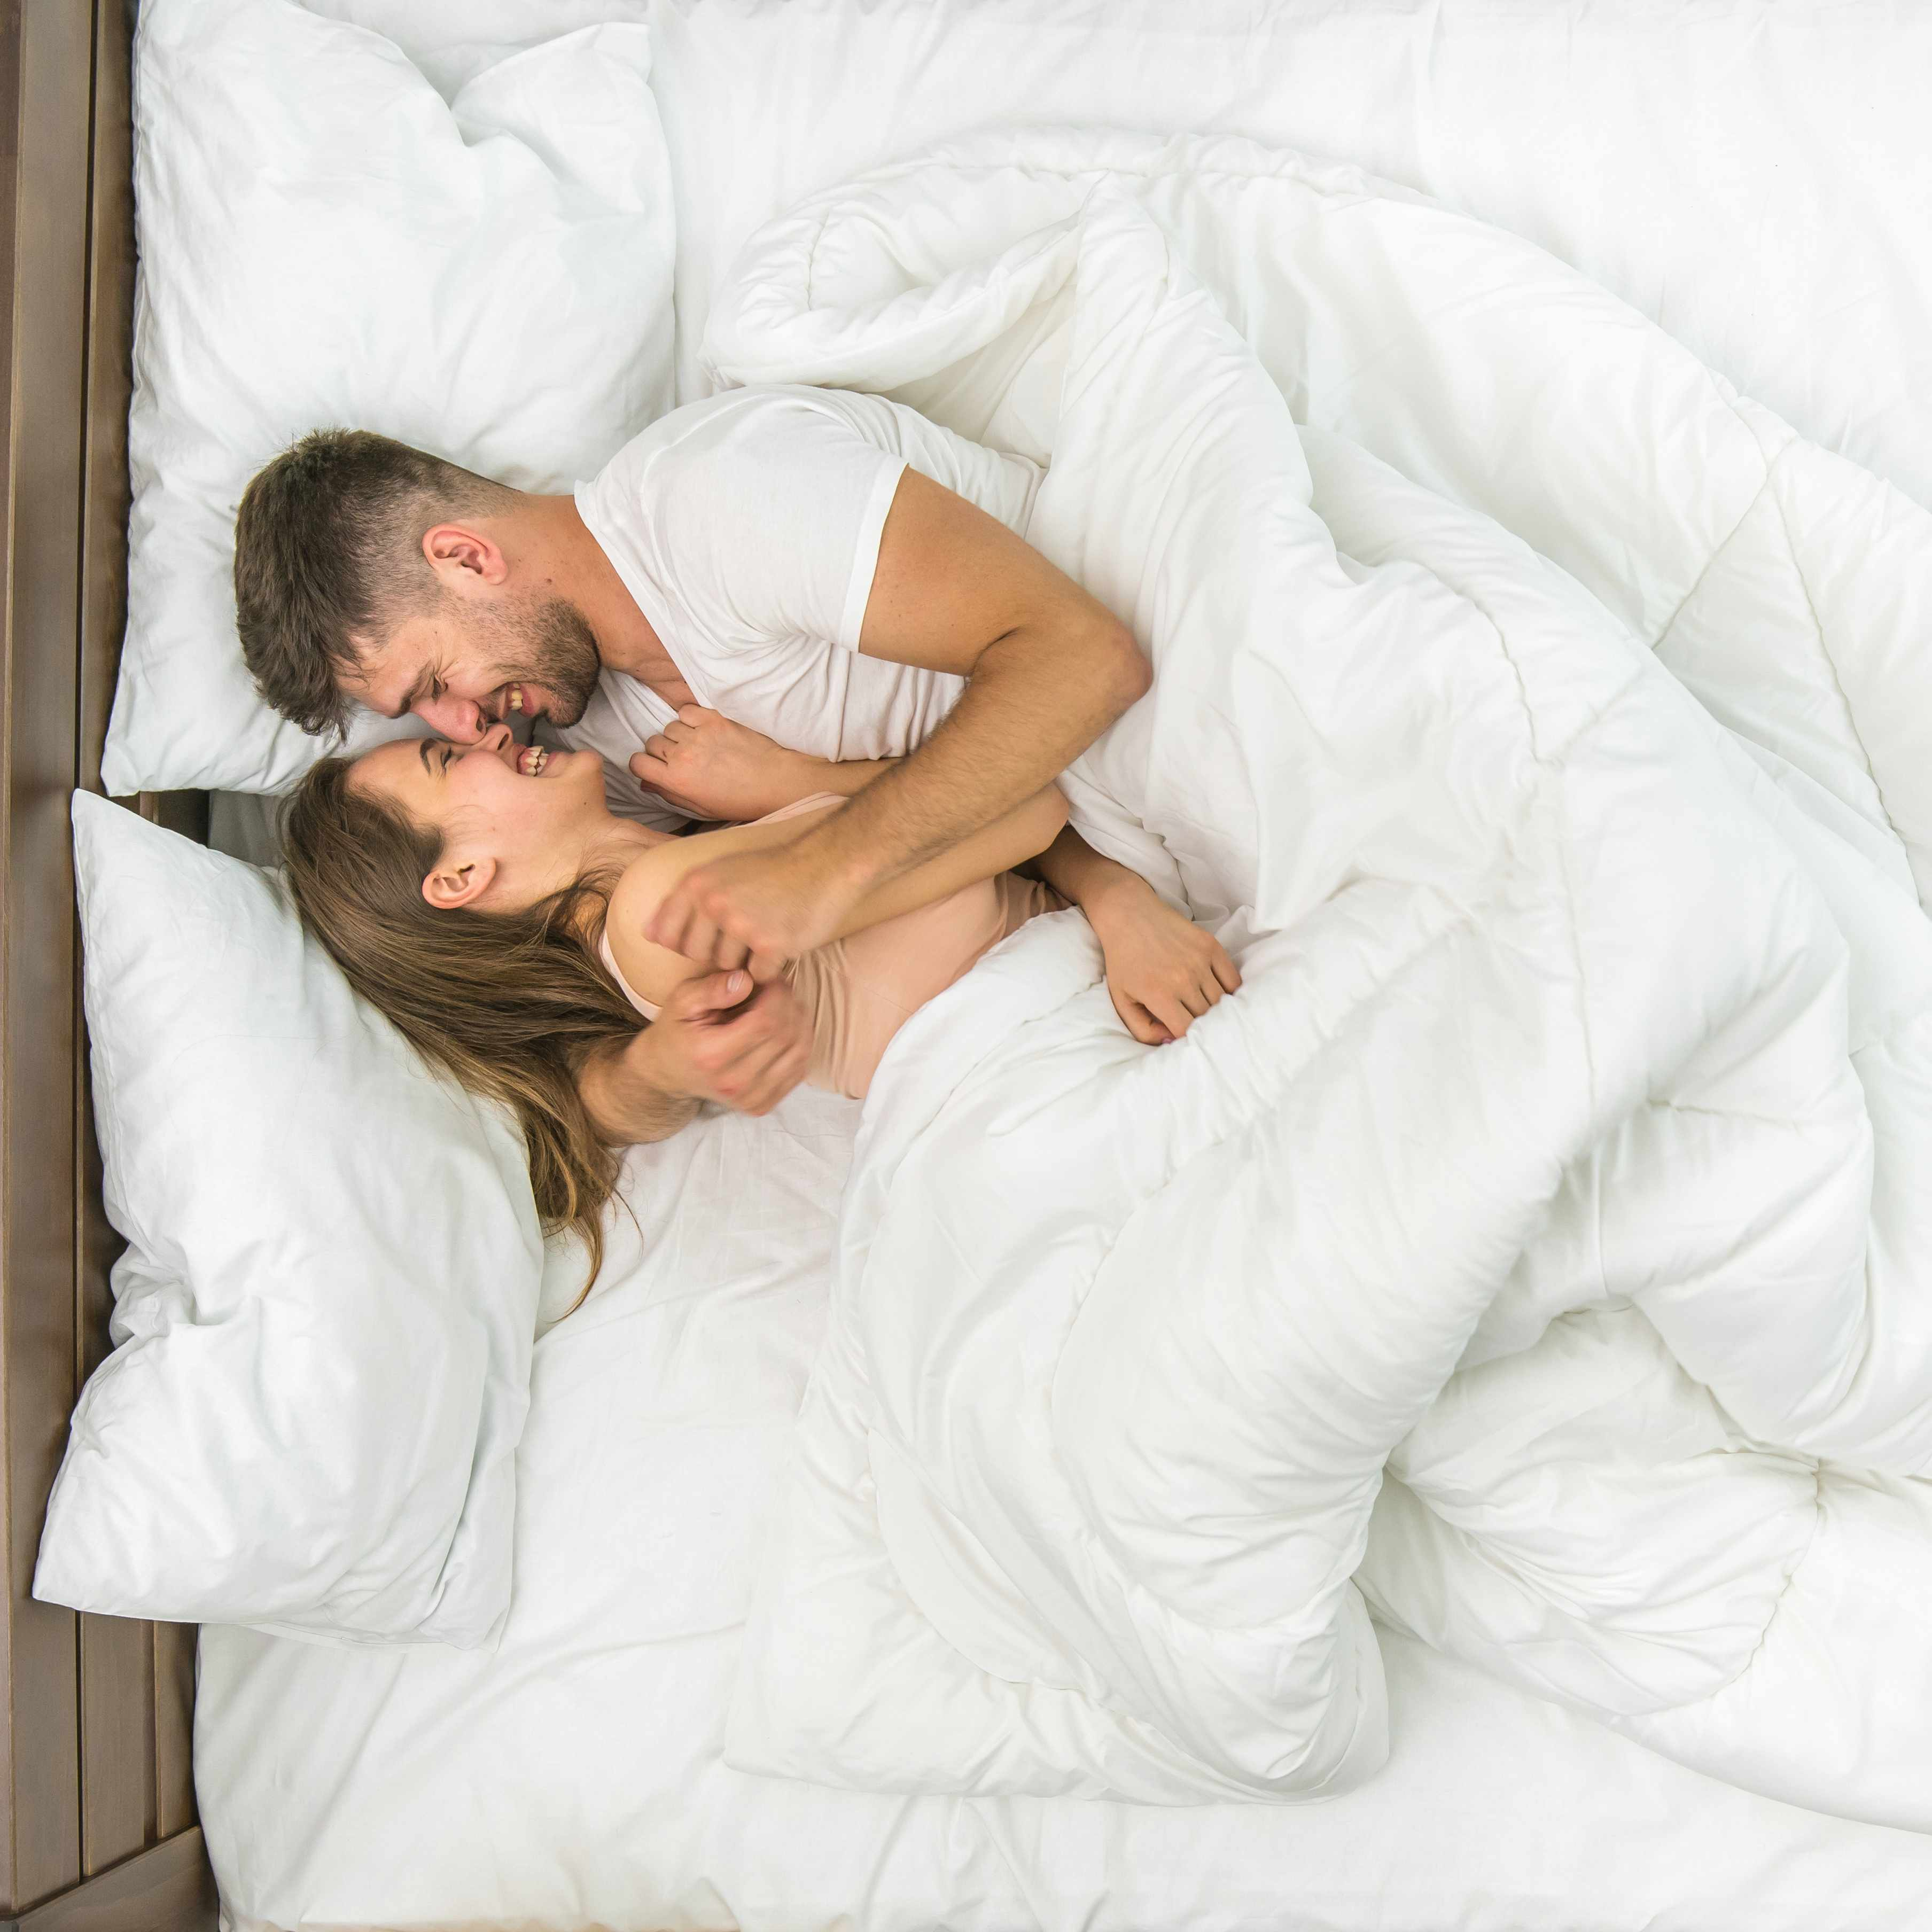 a young couple lying in bed, surrounded by white sheets and comforter, holding and hugging each other